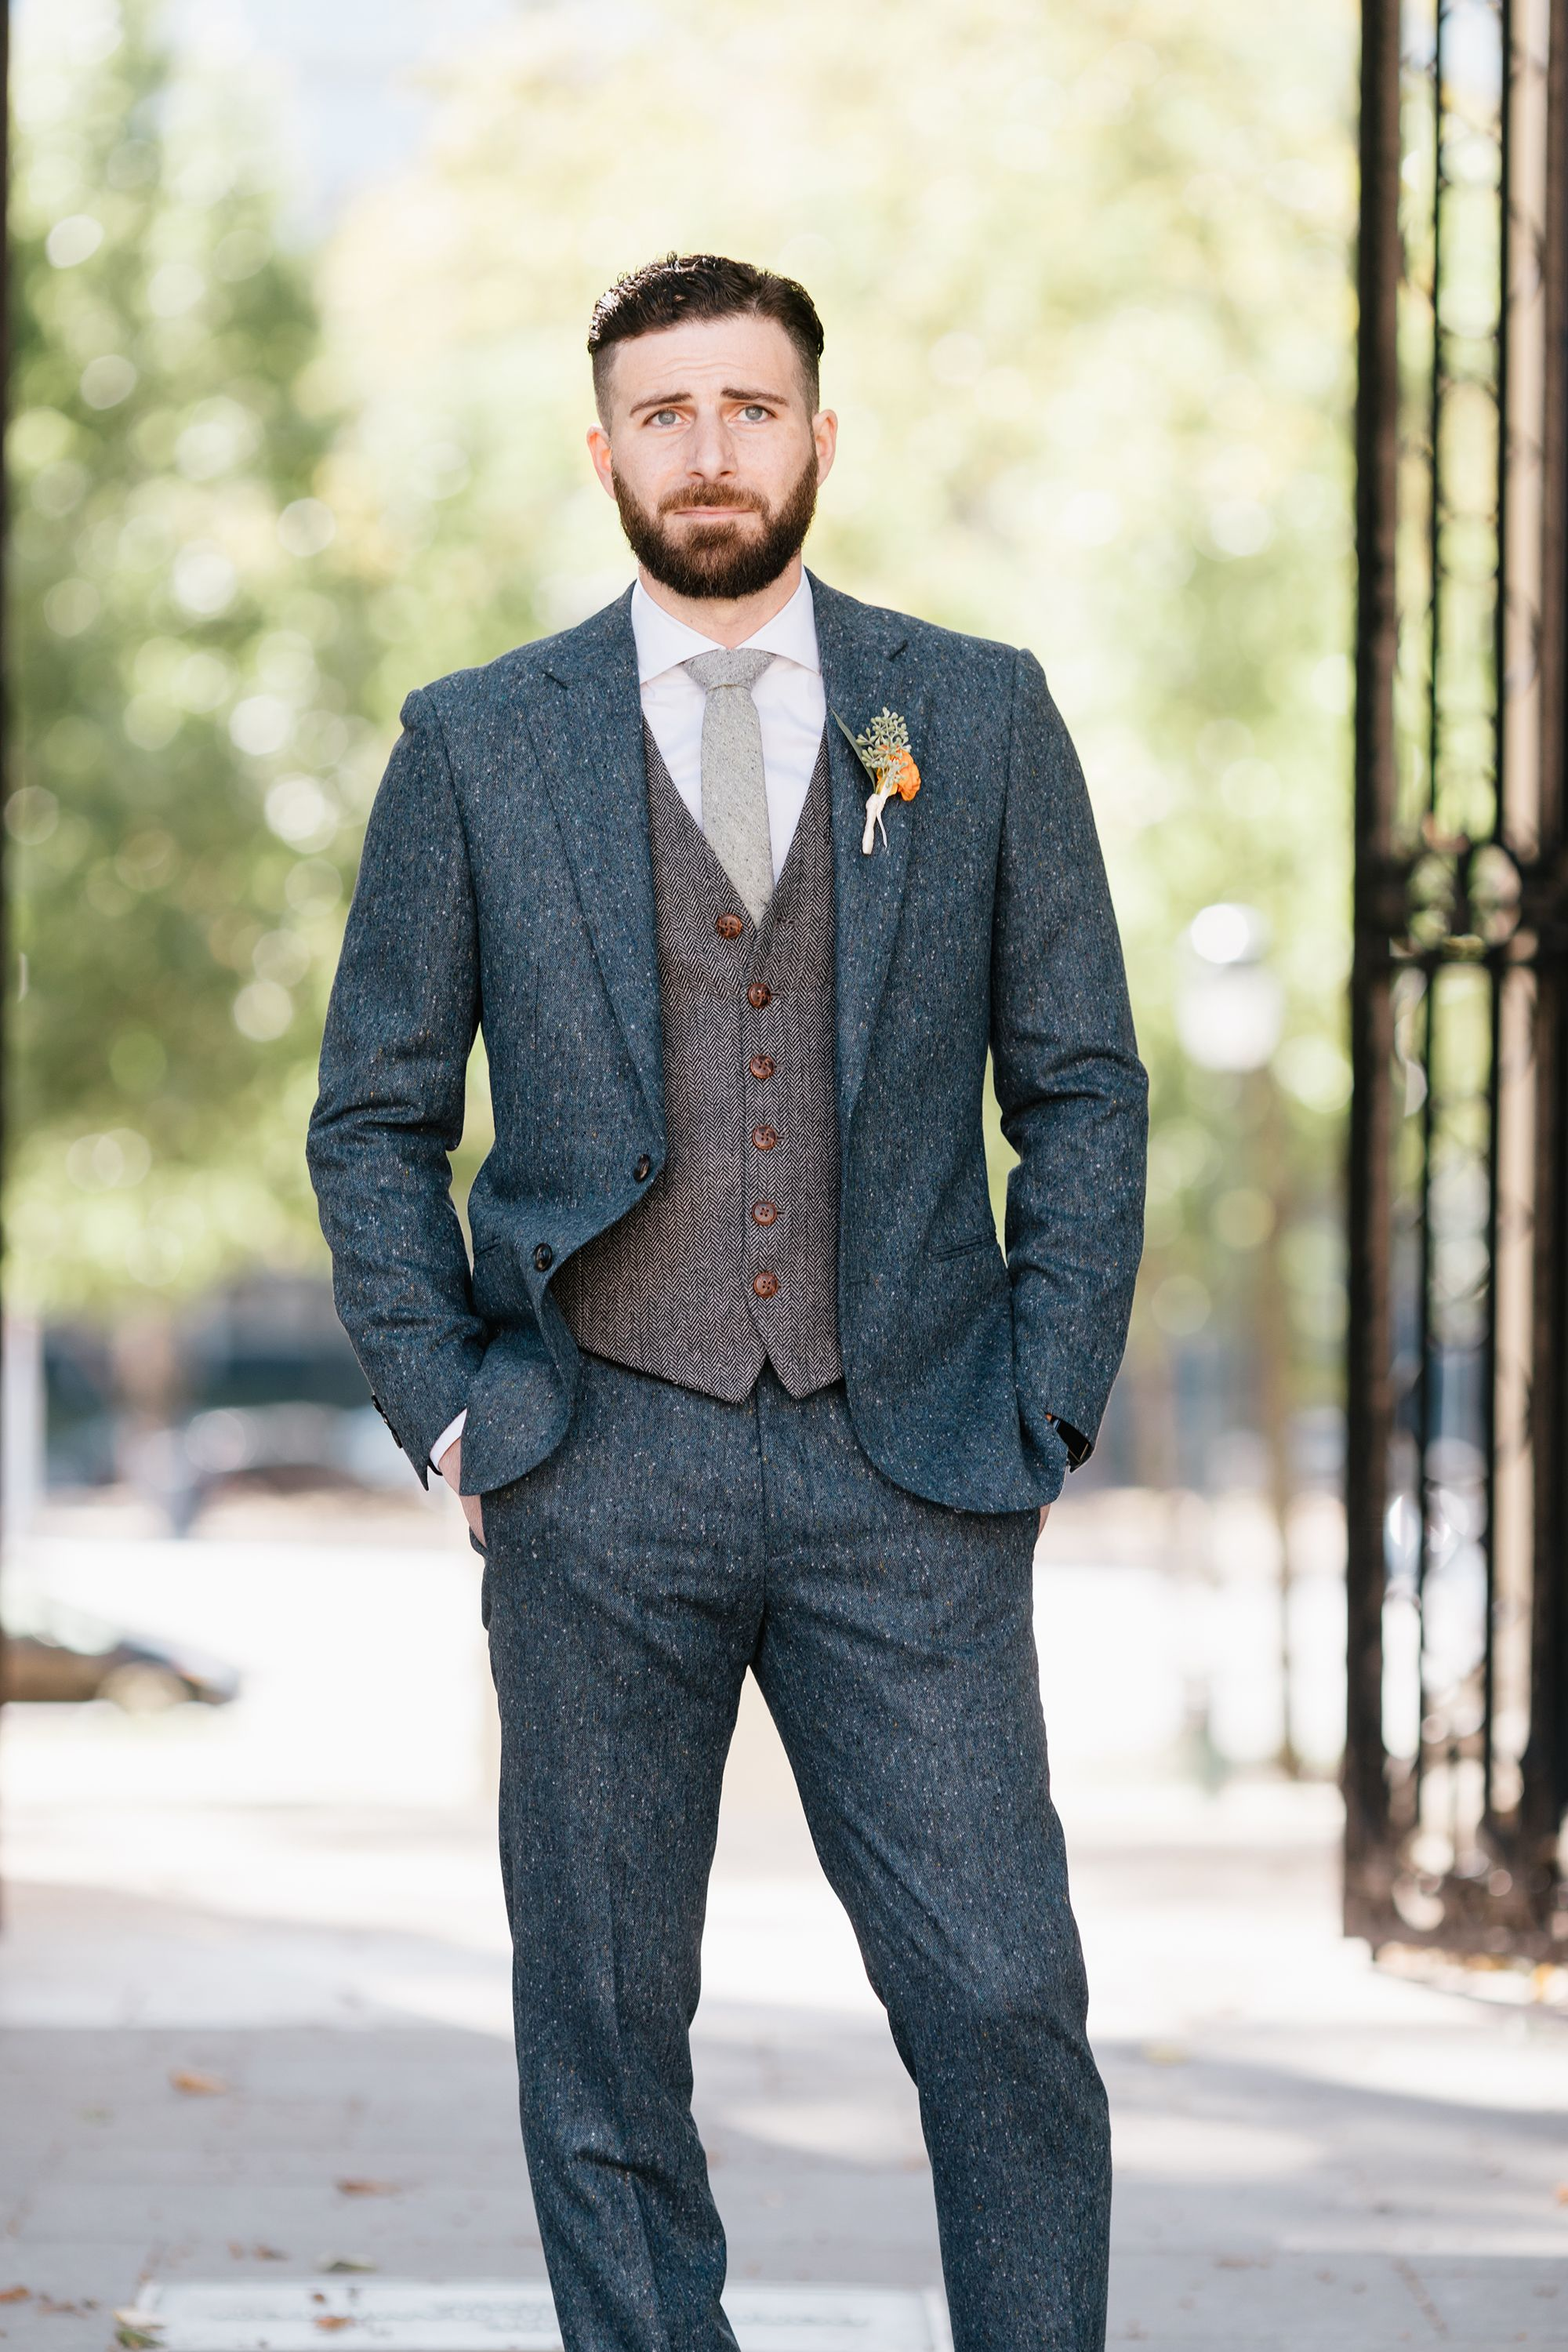 Our client looking sharp on his wedding day! Customsuit